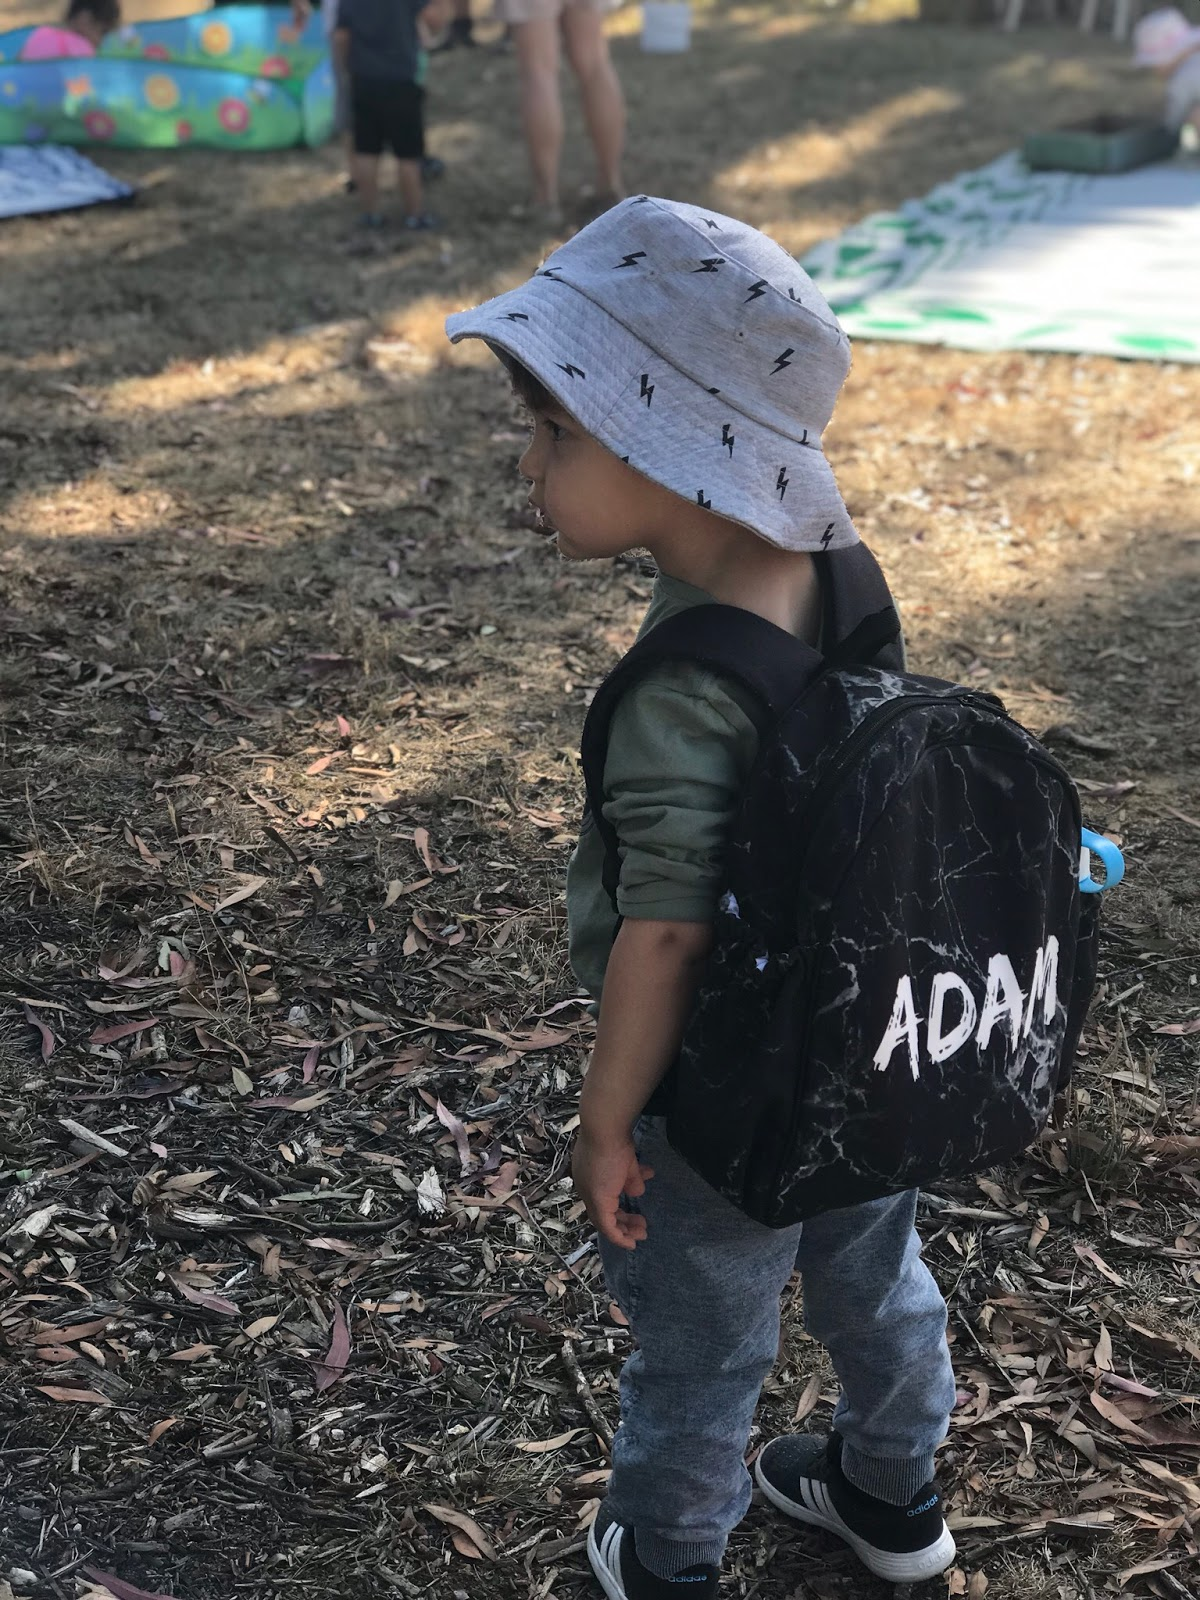 Image is a photo of a mixed race Asian toddler walking away from the camera outdoors. He is wearing a backpack with black marble print and white text spelling ADAM. He is also wearing a grey wide brim hat and a long sleeve green top, with blue jeans and black sneakers. He is looking at something off-camera, so the side profile of his face is visible. In the background, some colourful picnic mats are set up upon the ground.